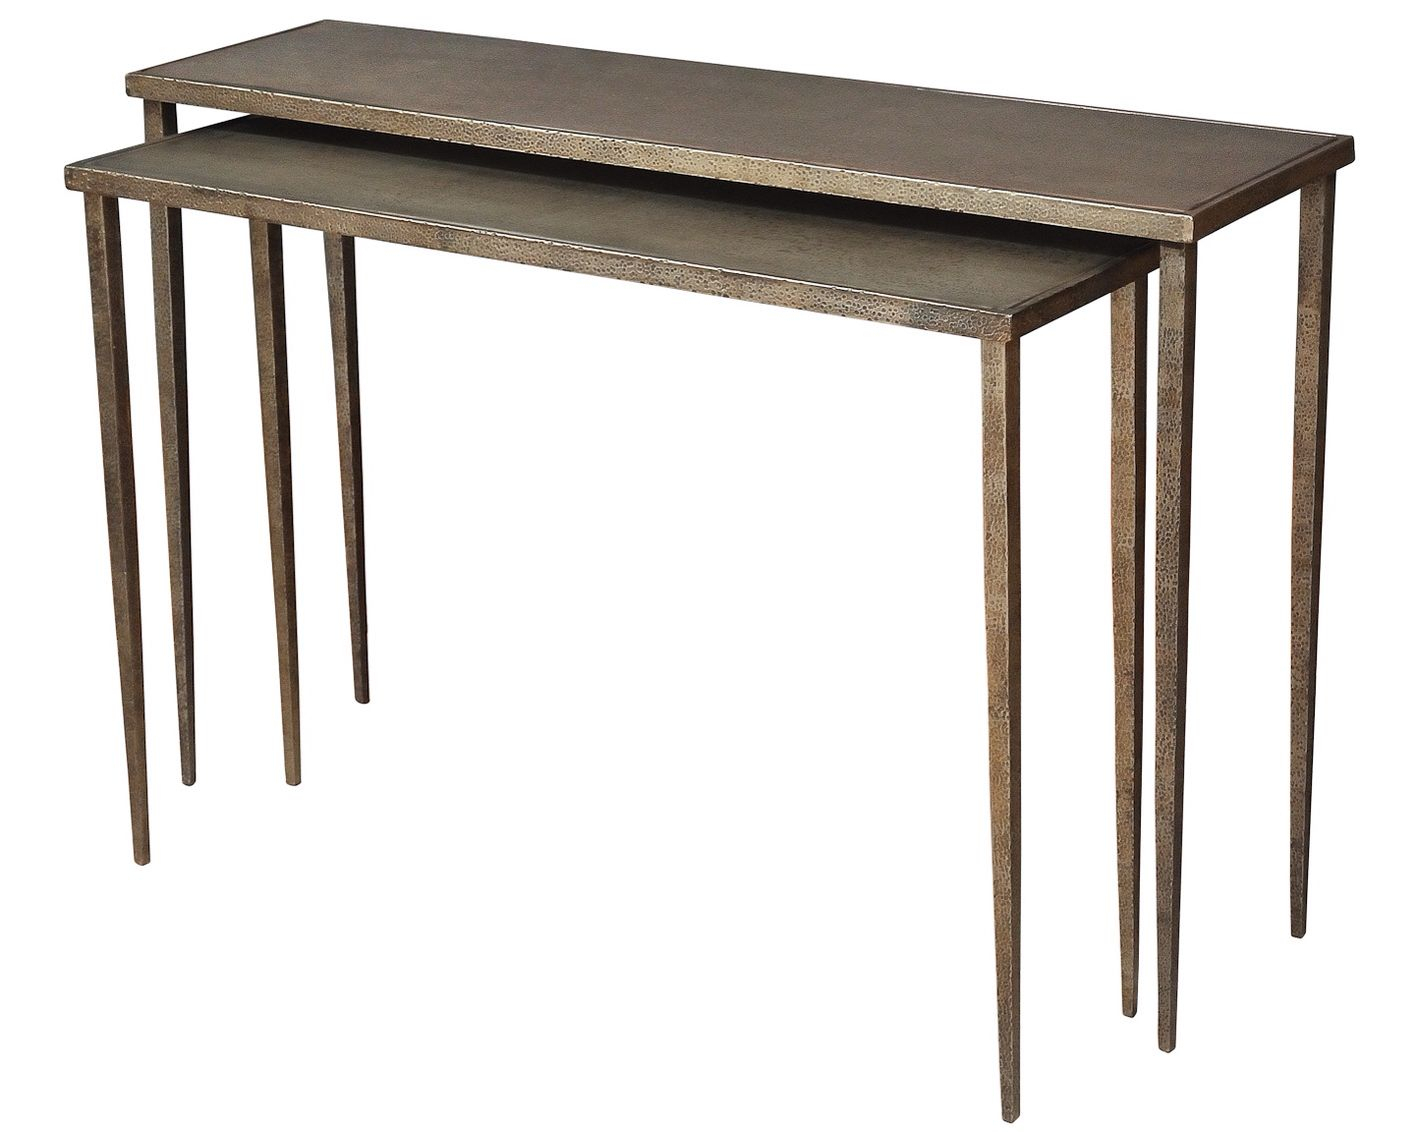 Hammered Sheet Metal Console Tables   My Designs   Pinterest Inside Parsons Grey Solid Surface Top & Dark Steel Base 48x16 Console Tables (View 3 of 30)